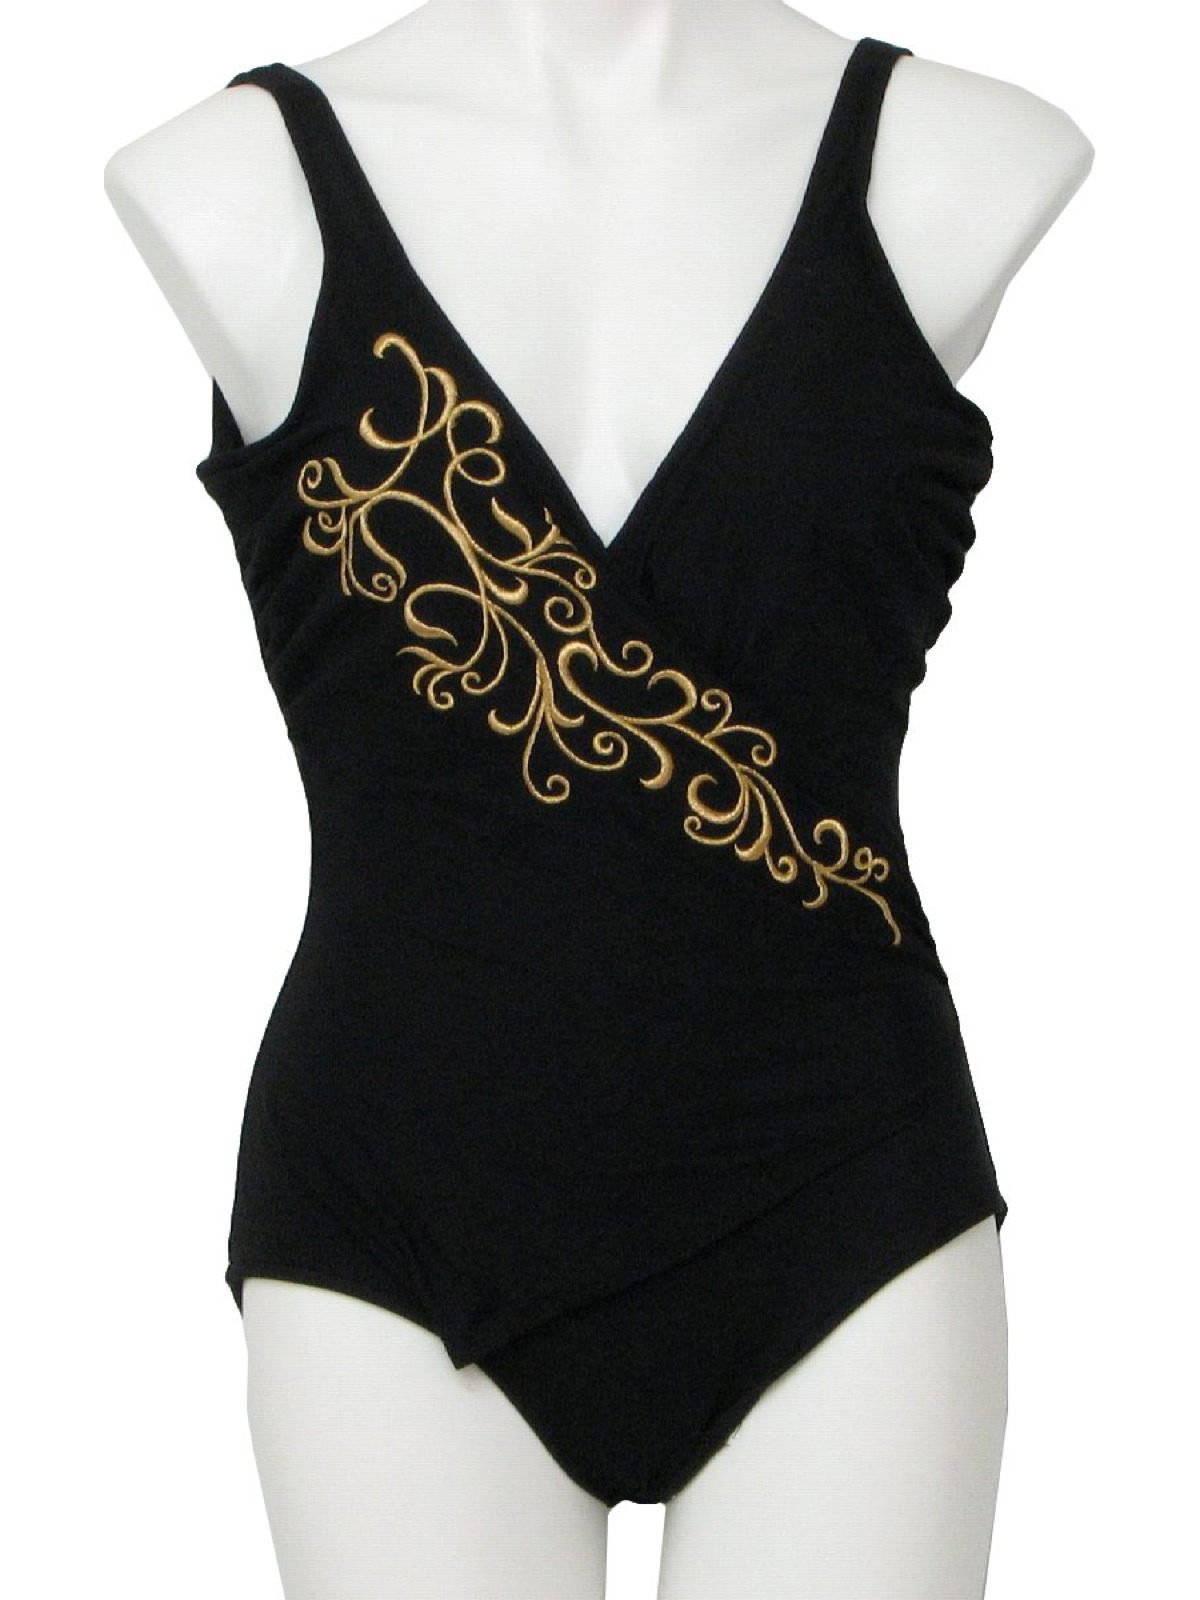 757117cfe7ae6 Vintage Slimsuit Eighties Swimsuit Swimwear  80s -Slimsuit- Womens black  nylon and spandex one piece totally 80s swimsuit with cross over gold  embroidered ...